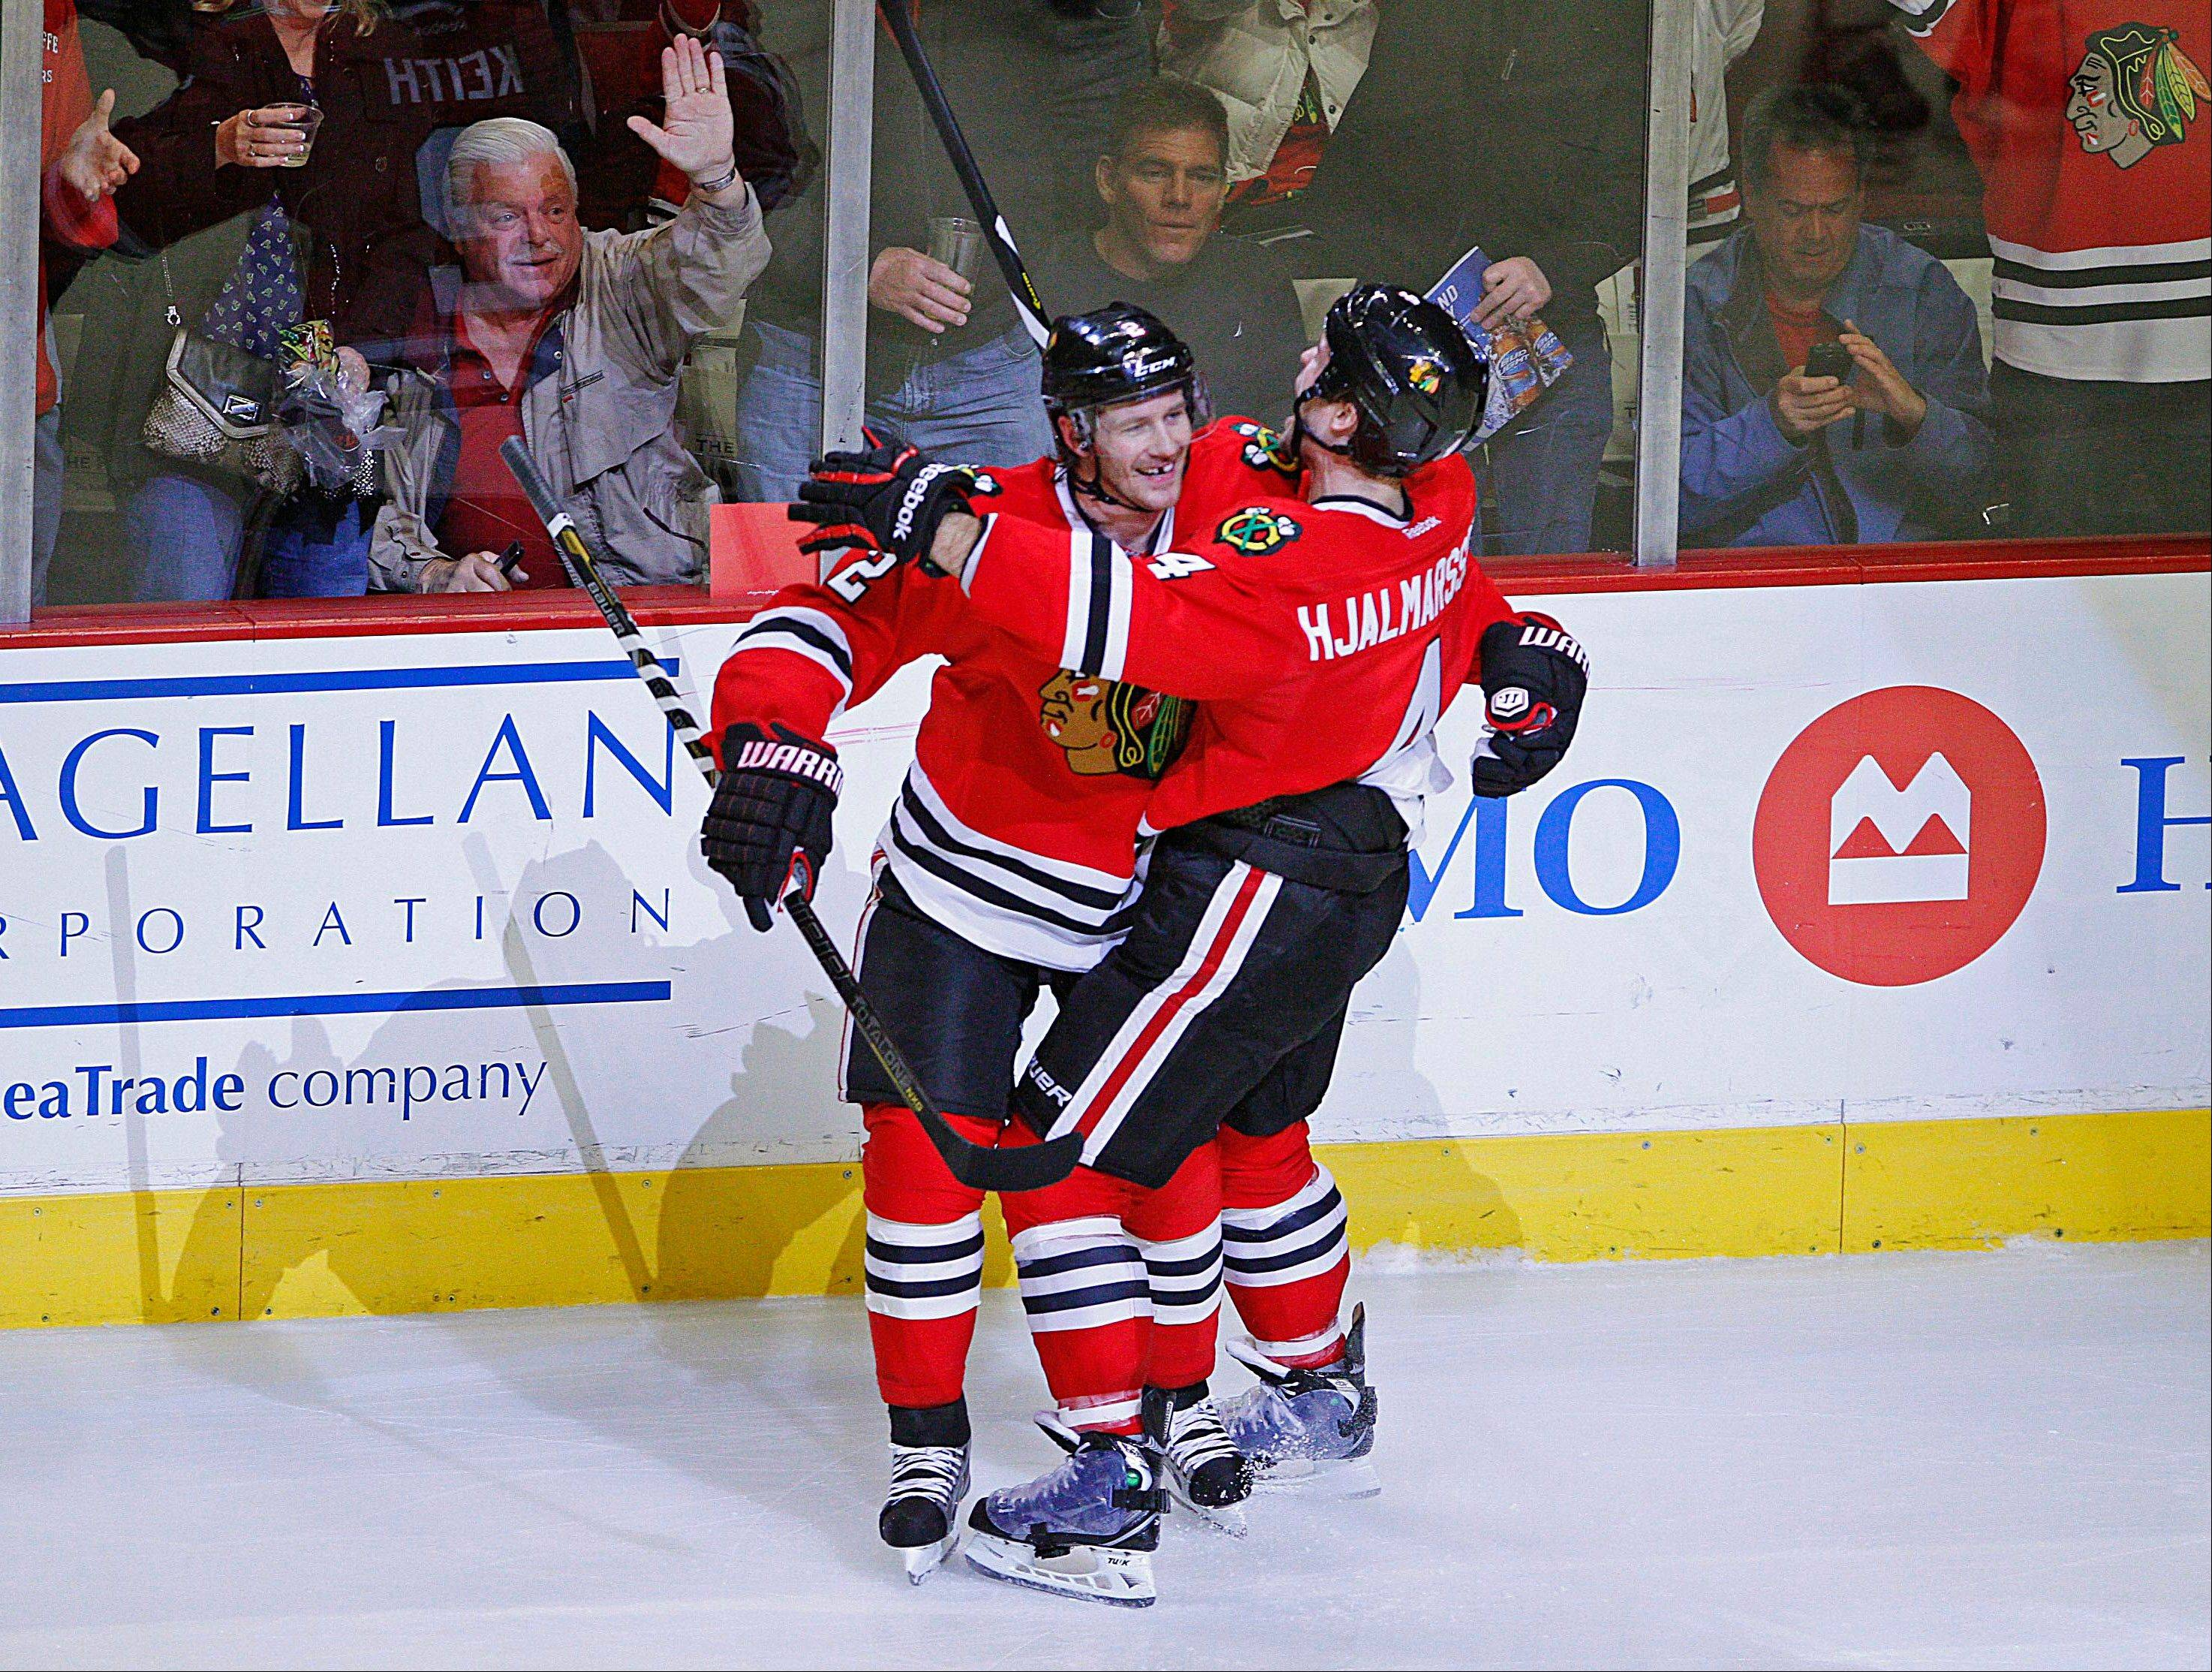 Chicago Blackhawks� Duncan Keith , left, and Niklas Hjalmarsson hug after Hjalmarrsson scored against the Dallas Stars during the third period in an NHL hockey game in Chicago, Monday, April 15, 2013. The Blackhawks won 5-2.